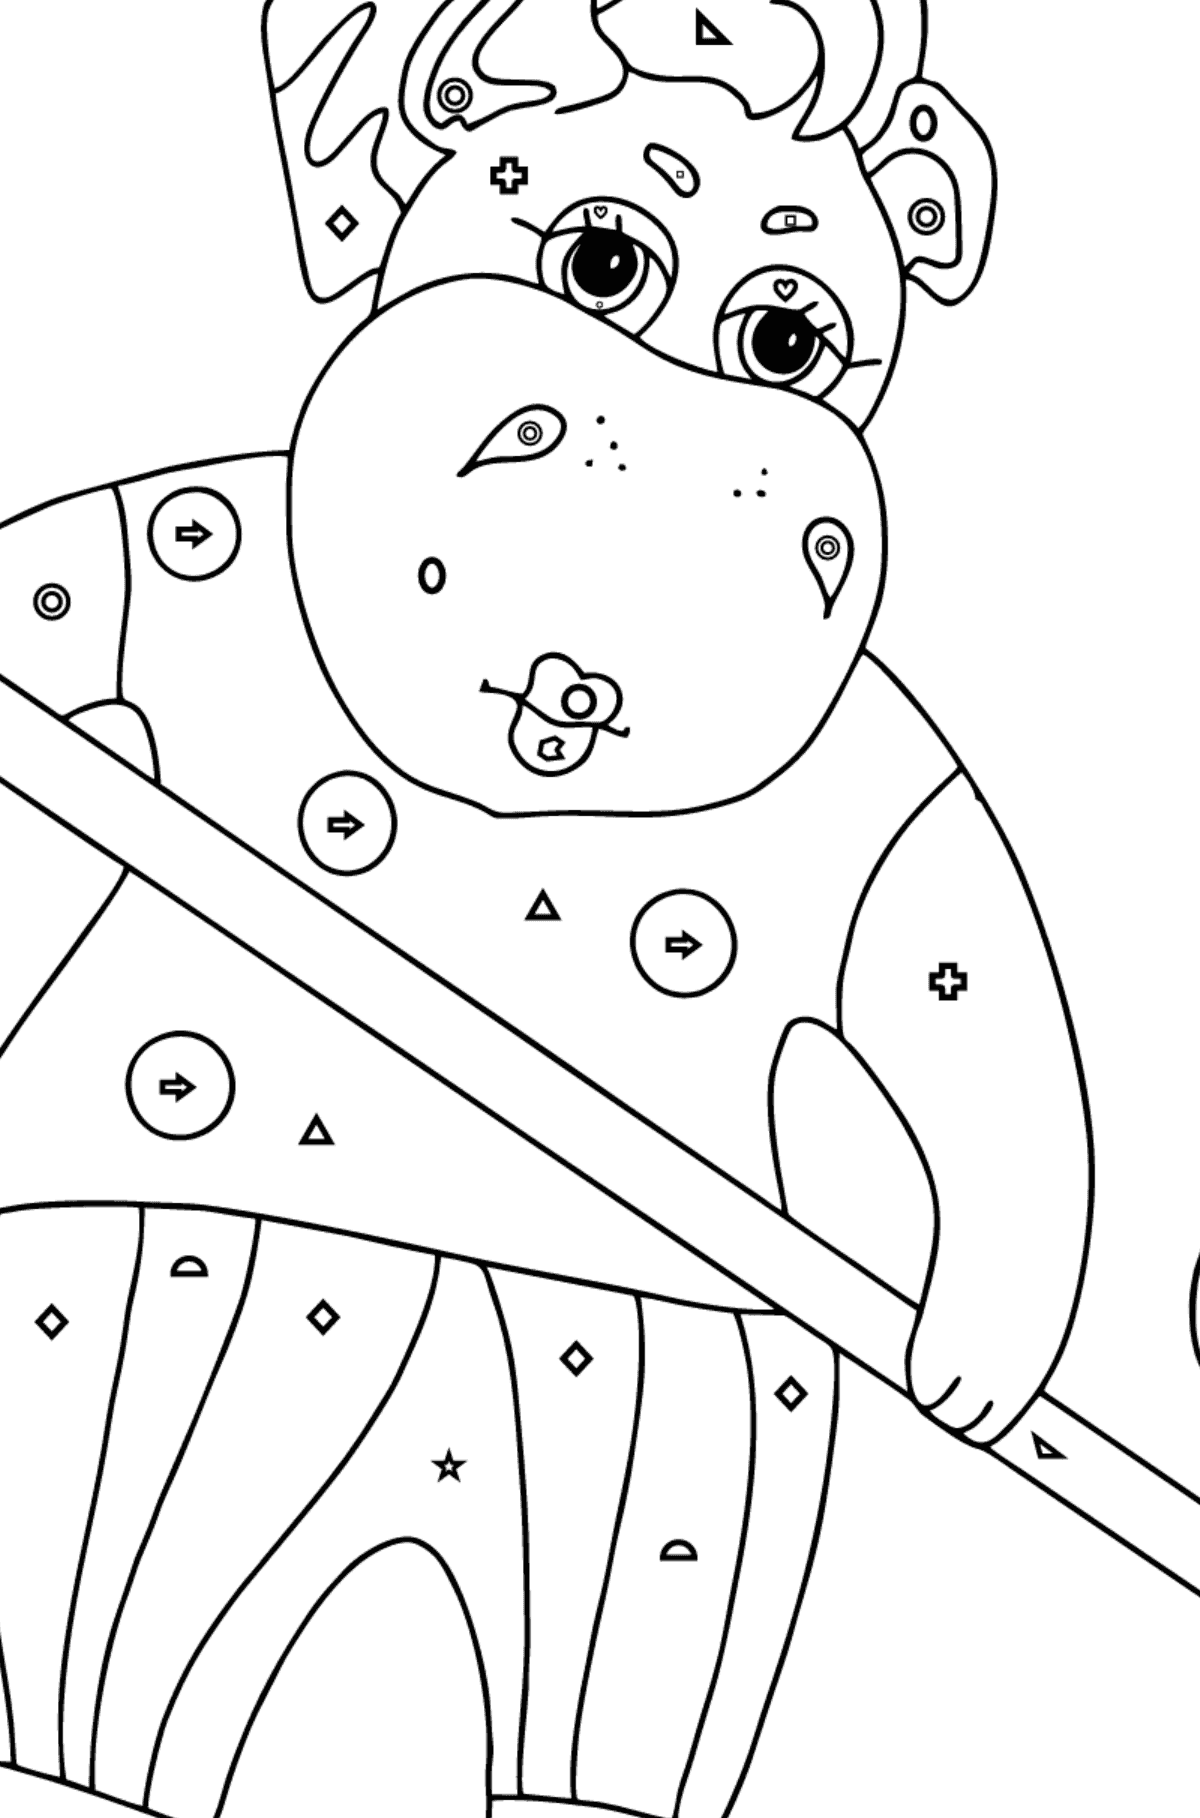 Coloring Page - A Hippo is Sweeping Autumn Leaves for Kids  - Color by Geometric Shapes